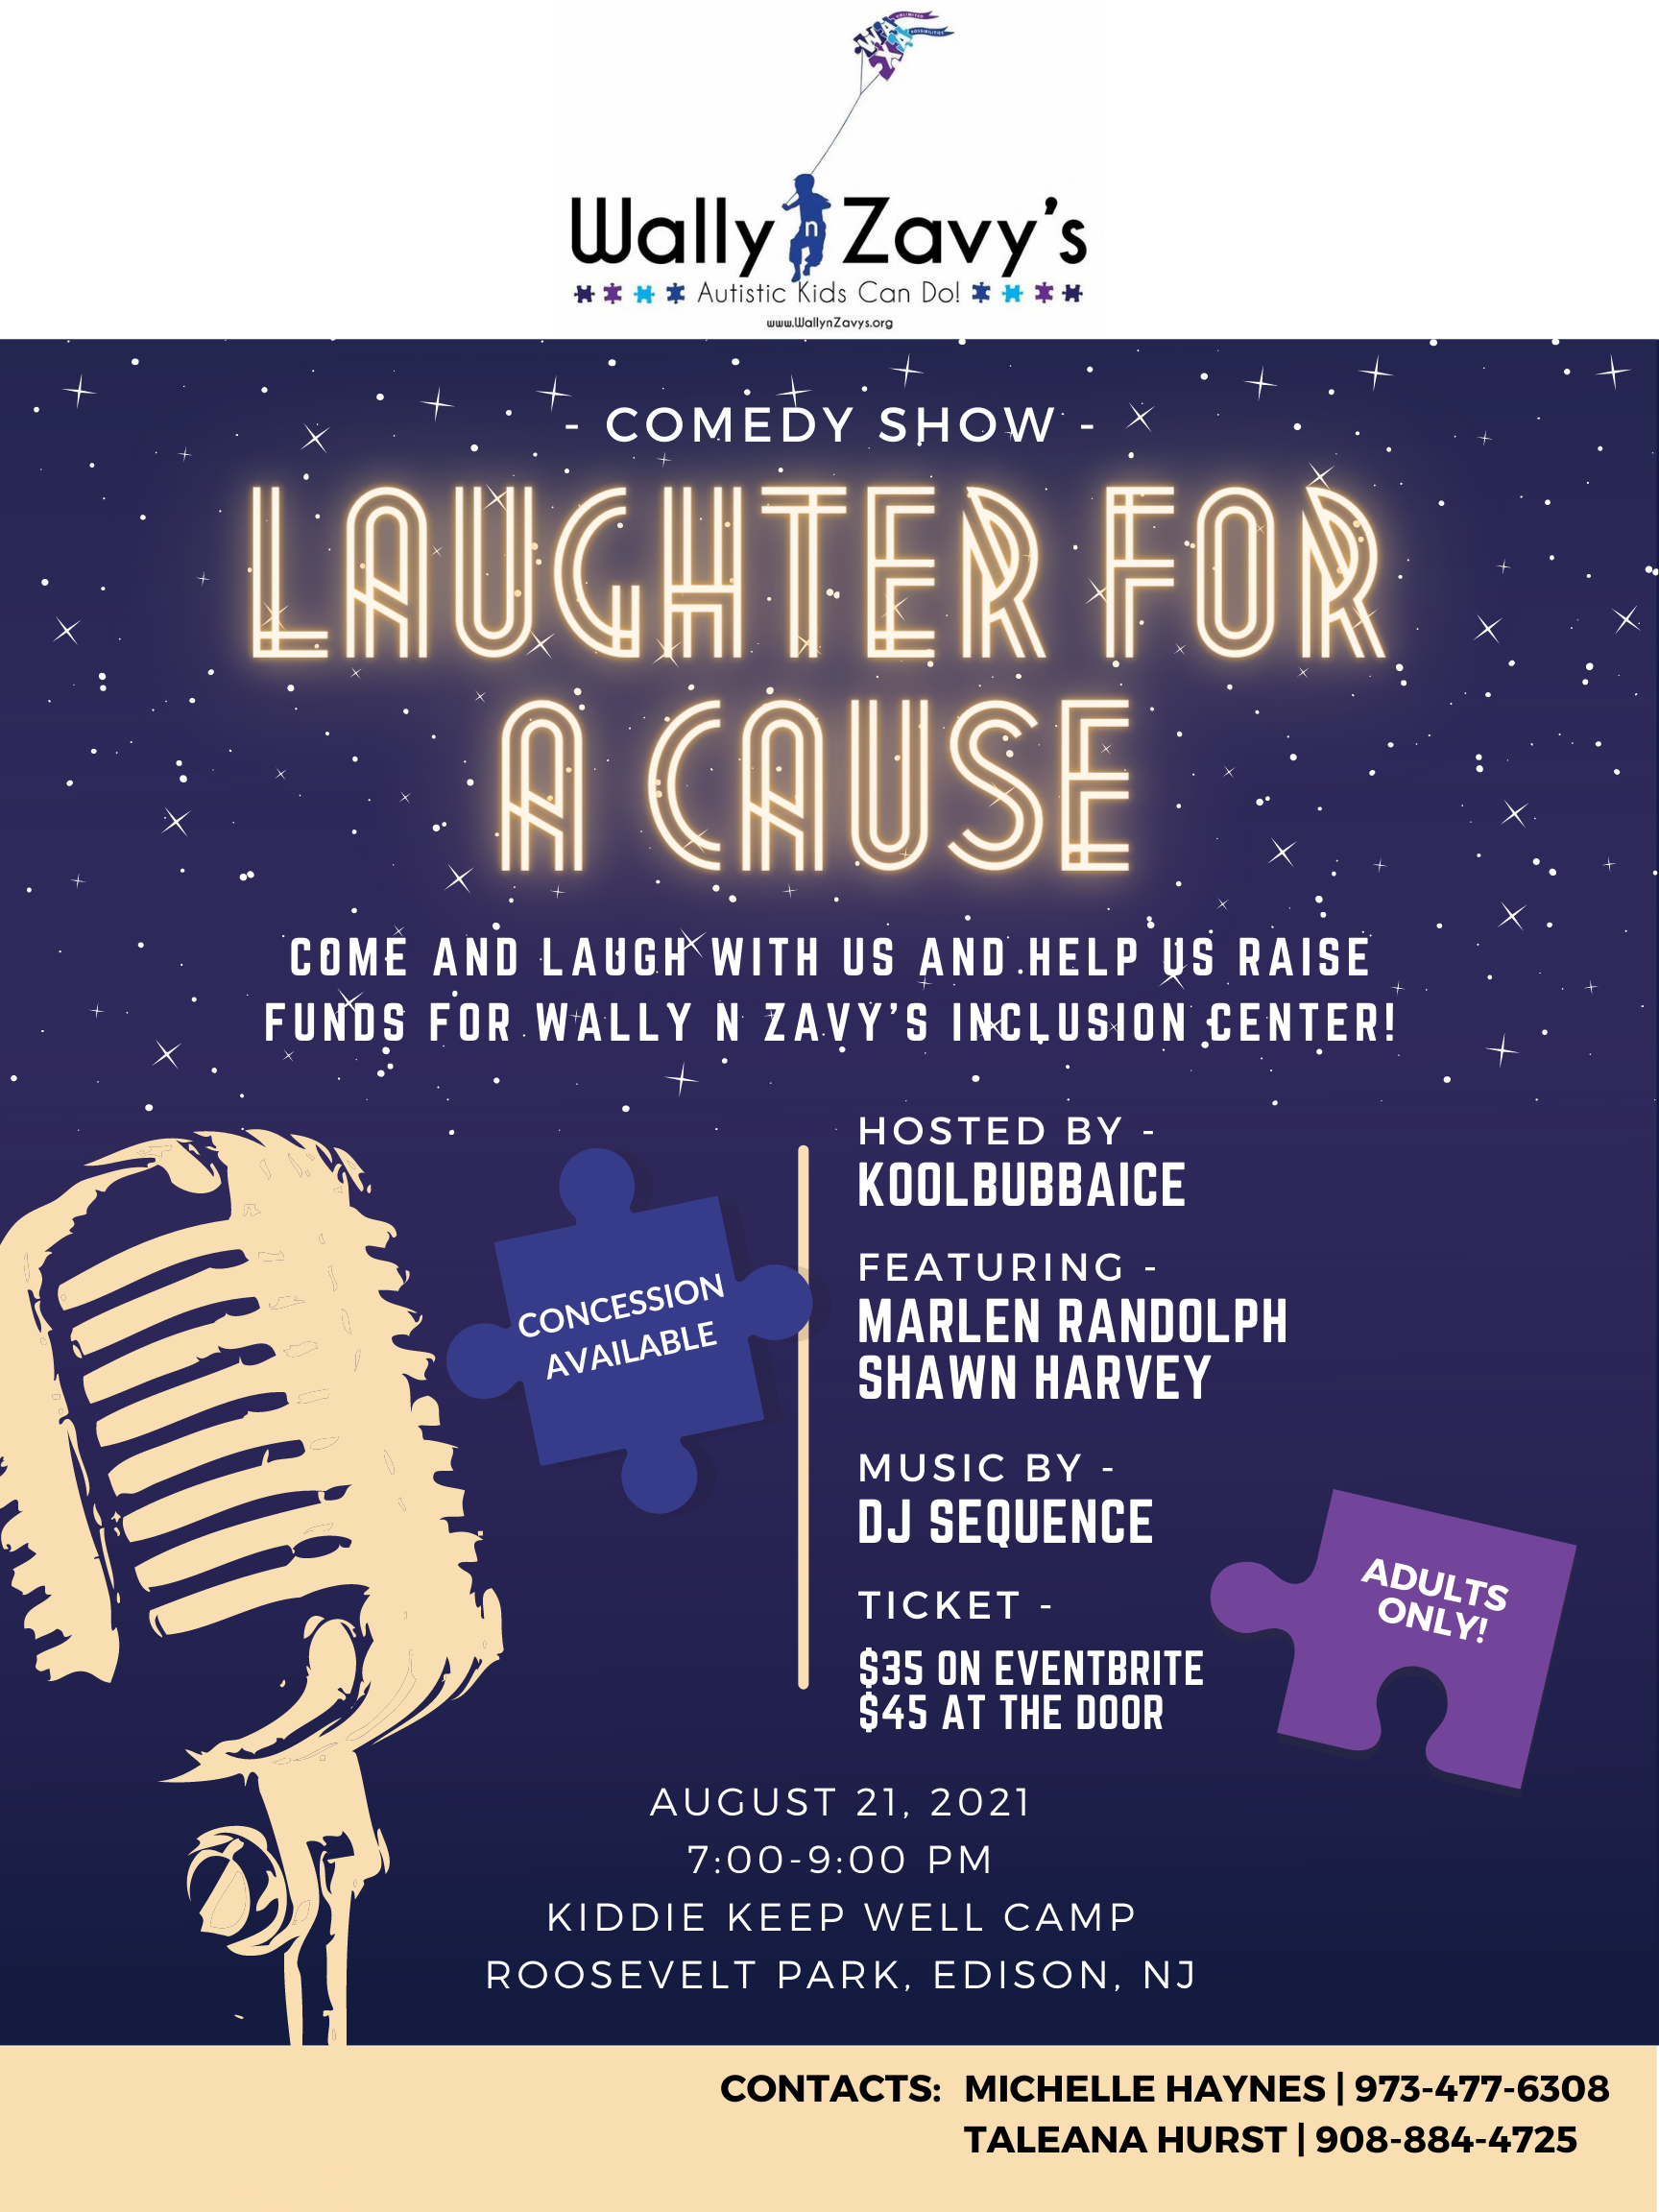 Laughter for a Cause